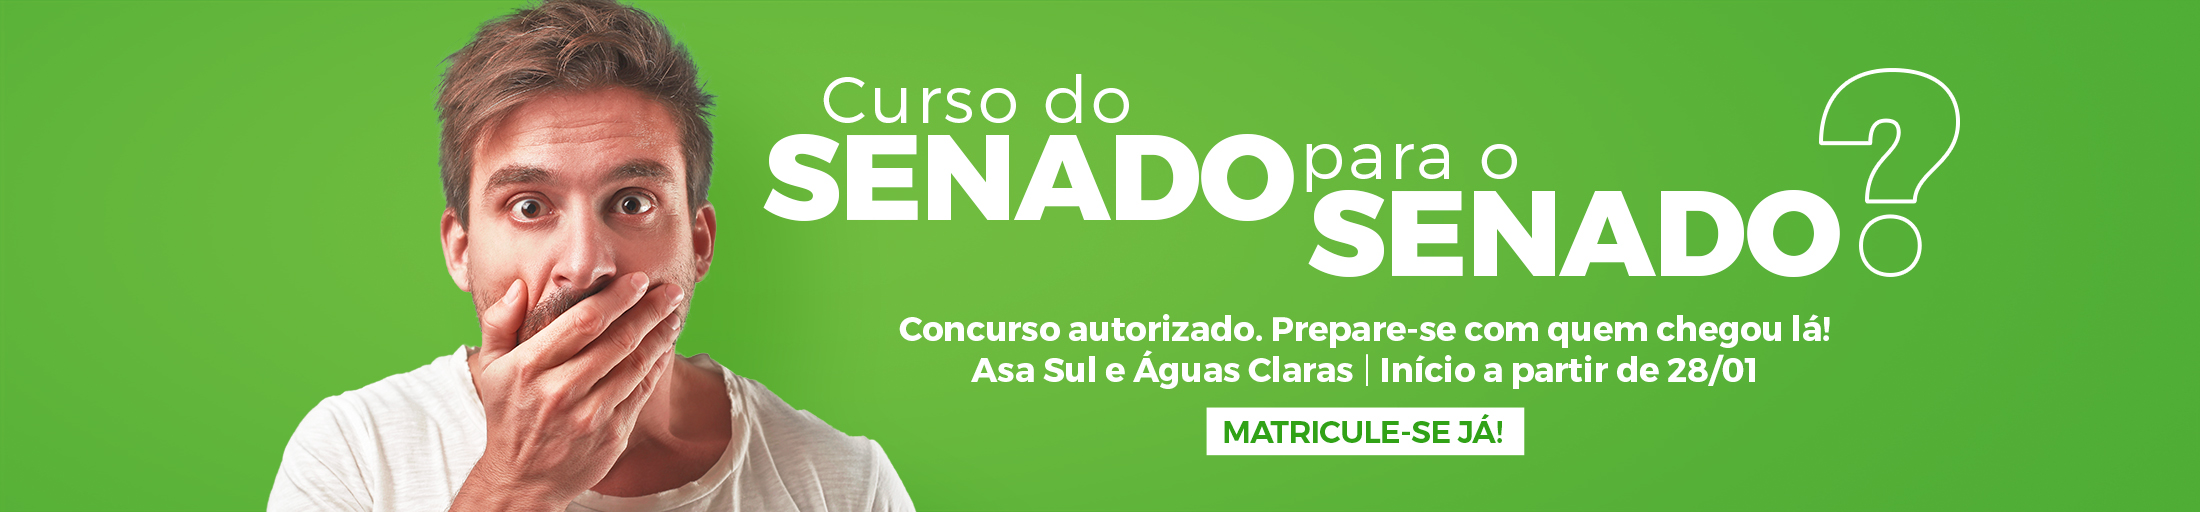 BANNER_SITE_VOLTA_AS_AULAS_2020_SENADO